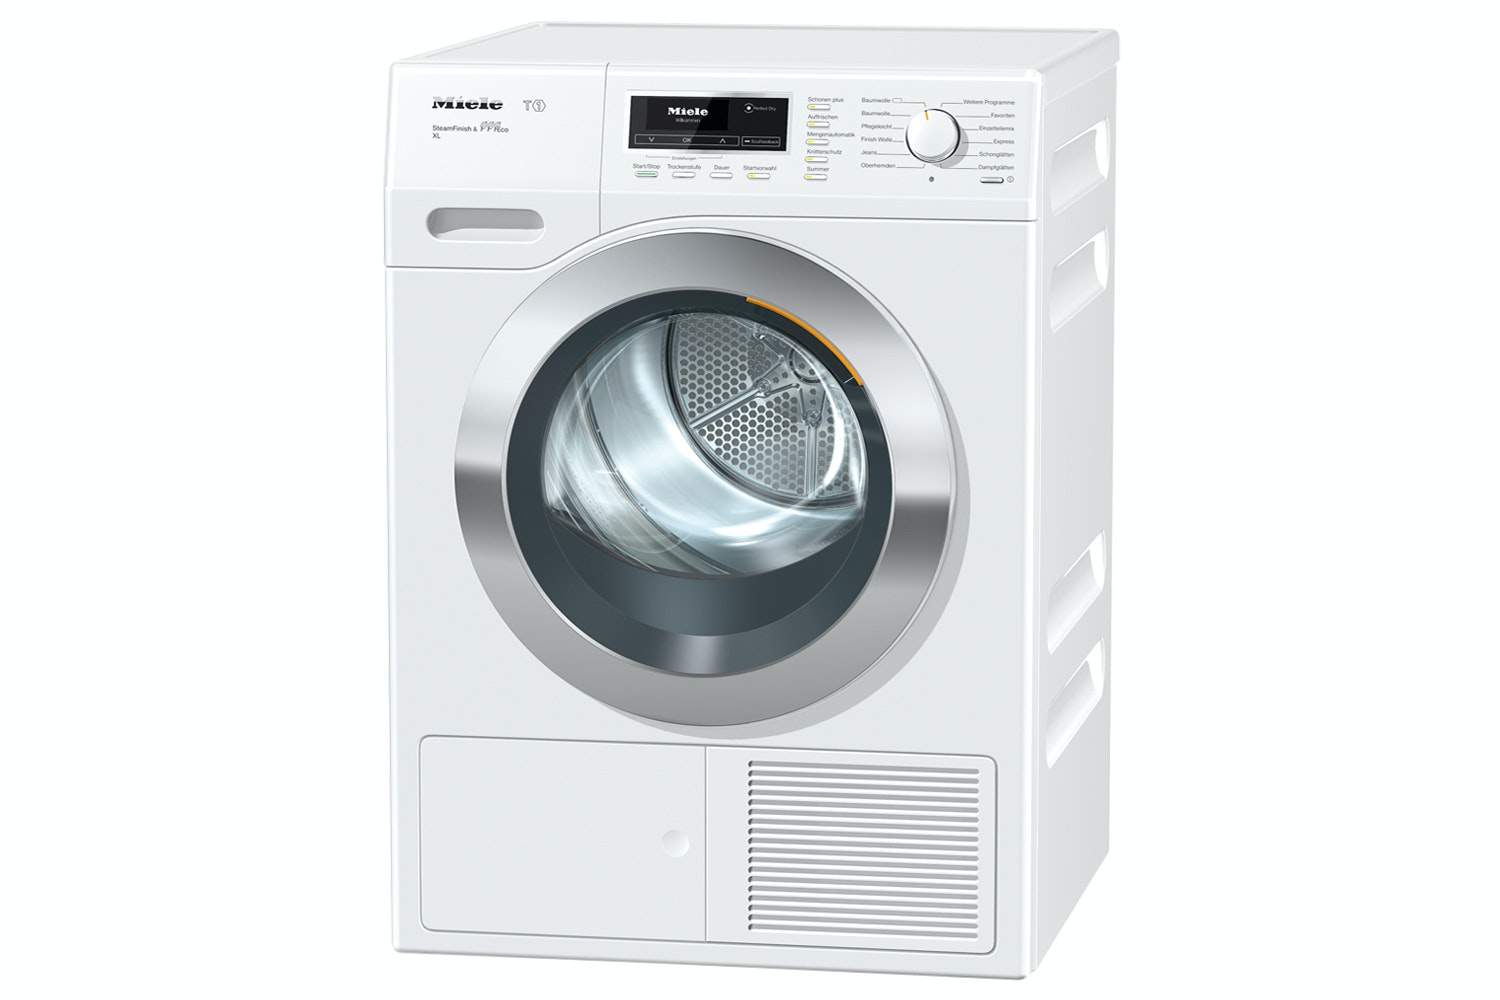 Miele TKR850 WP SFinish&Eco XL T1  Heat-pump tumble dryer   with 9 kg and ProfiEco motor – best drying results even for large laundry loads